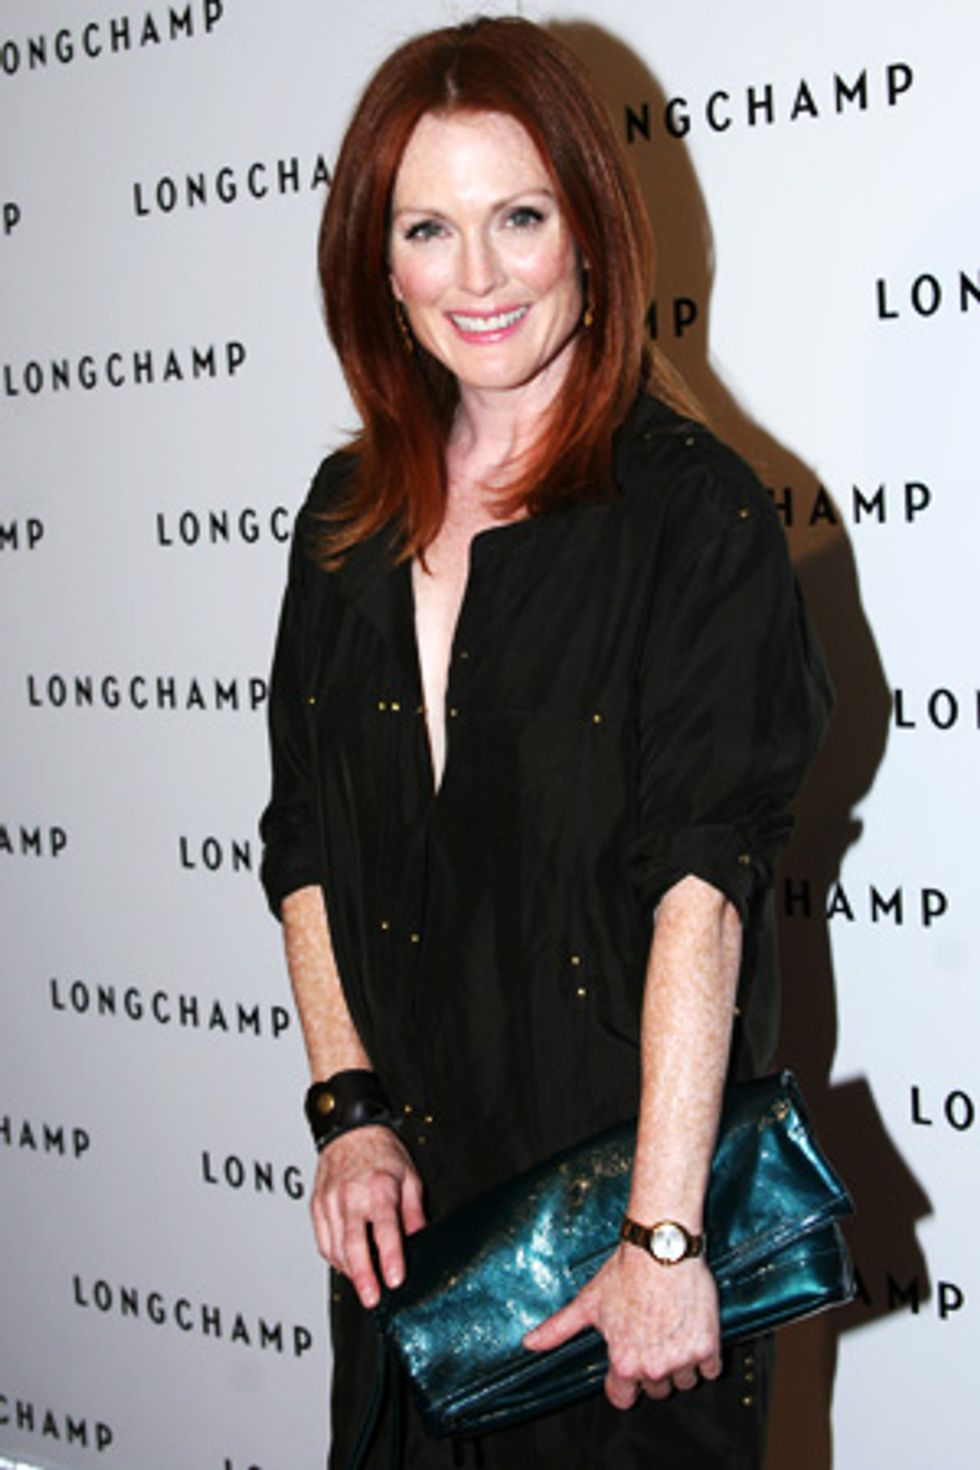 About Last Night... Longchamp 60th Anniversary Party